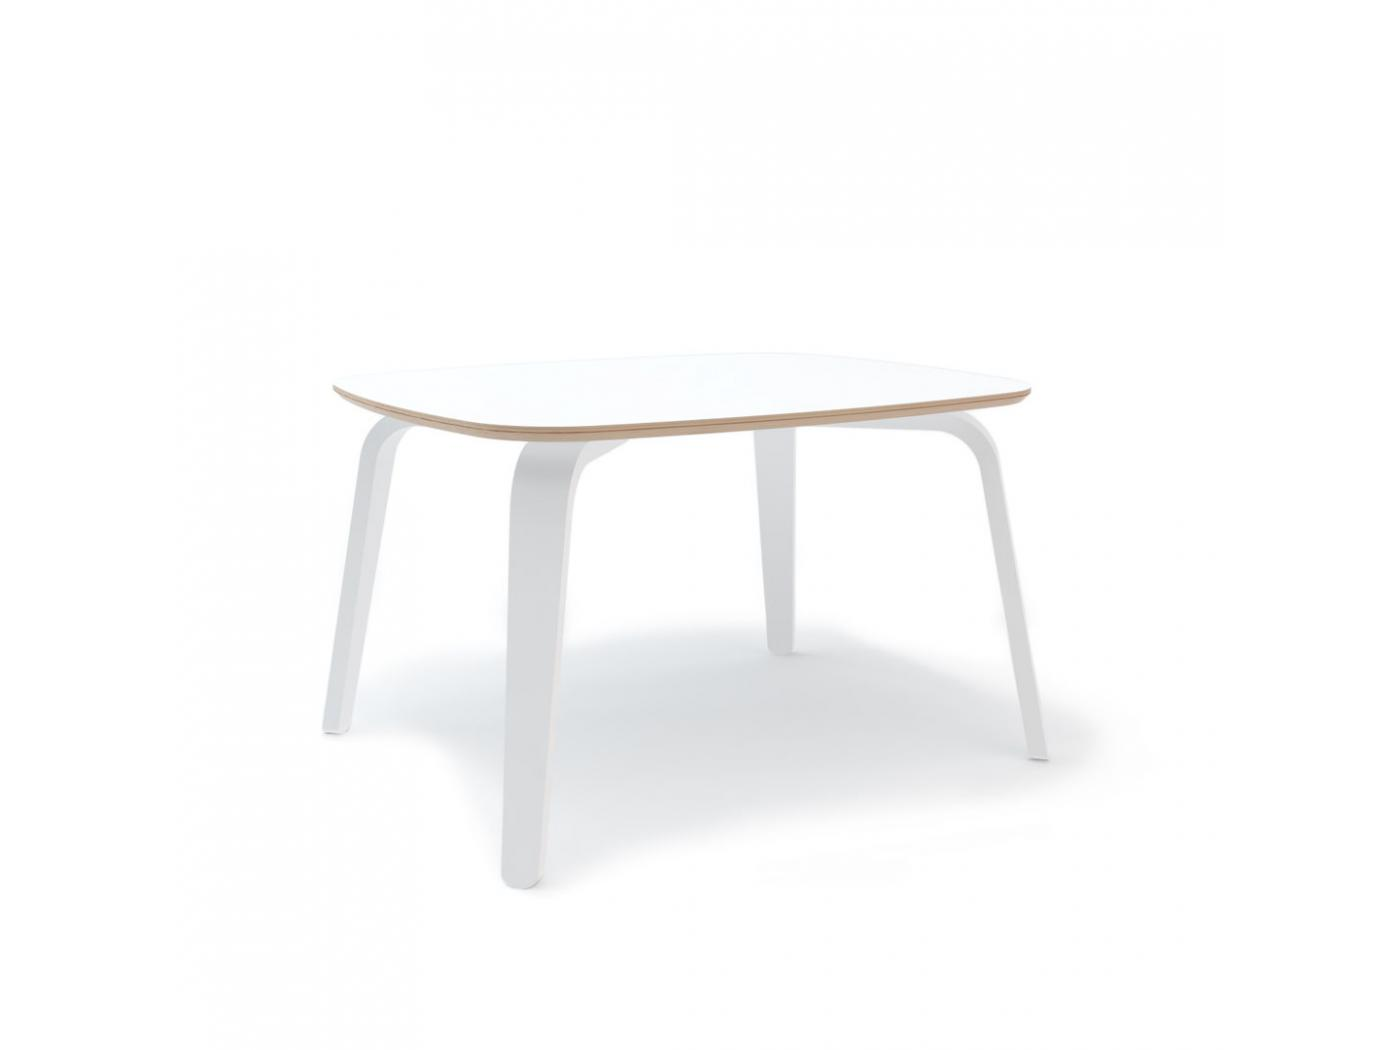 table-enfant-play-bouleau-naturel-oeuf-nyc